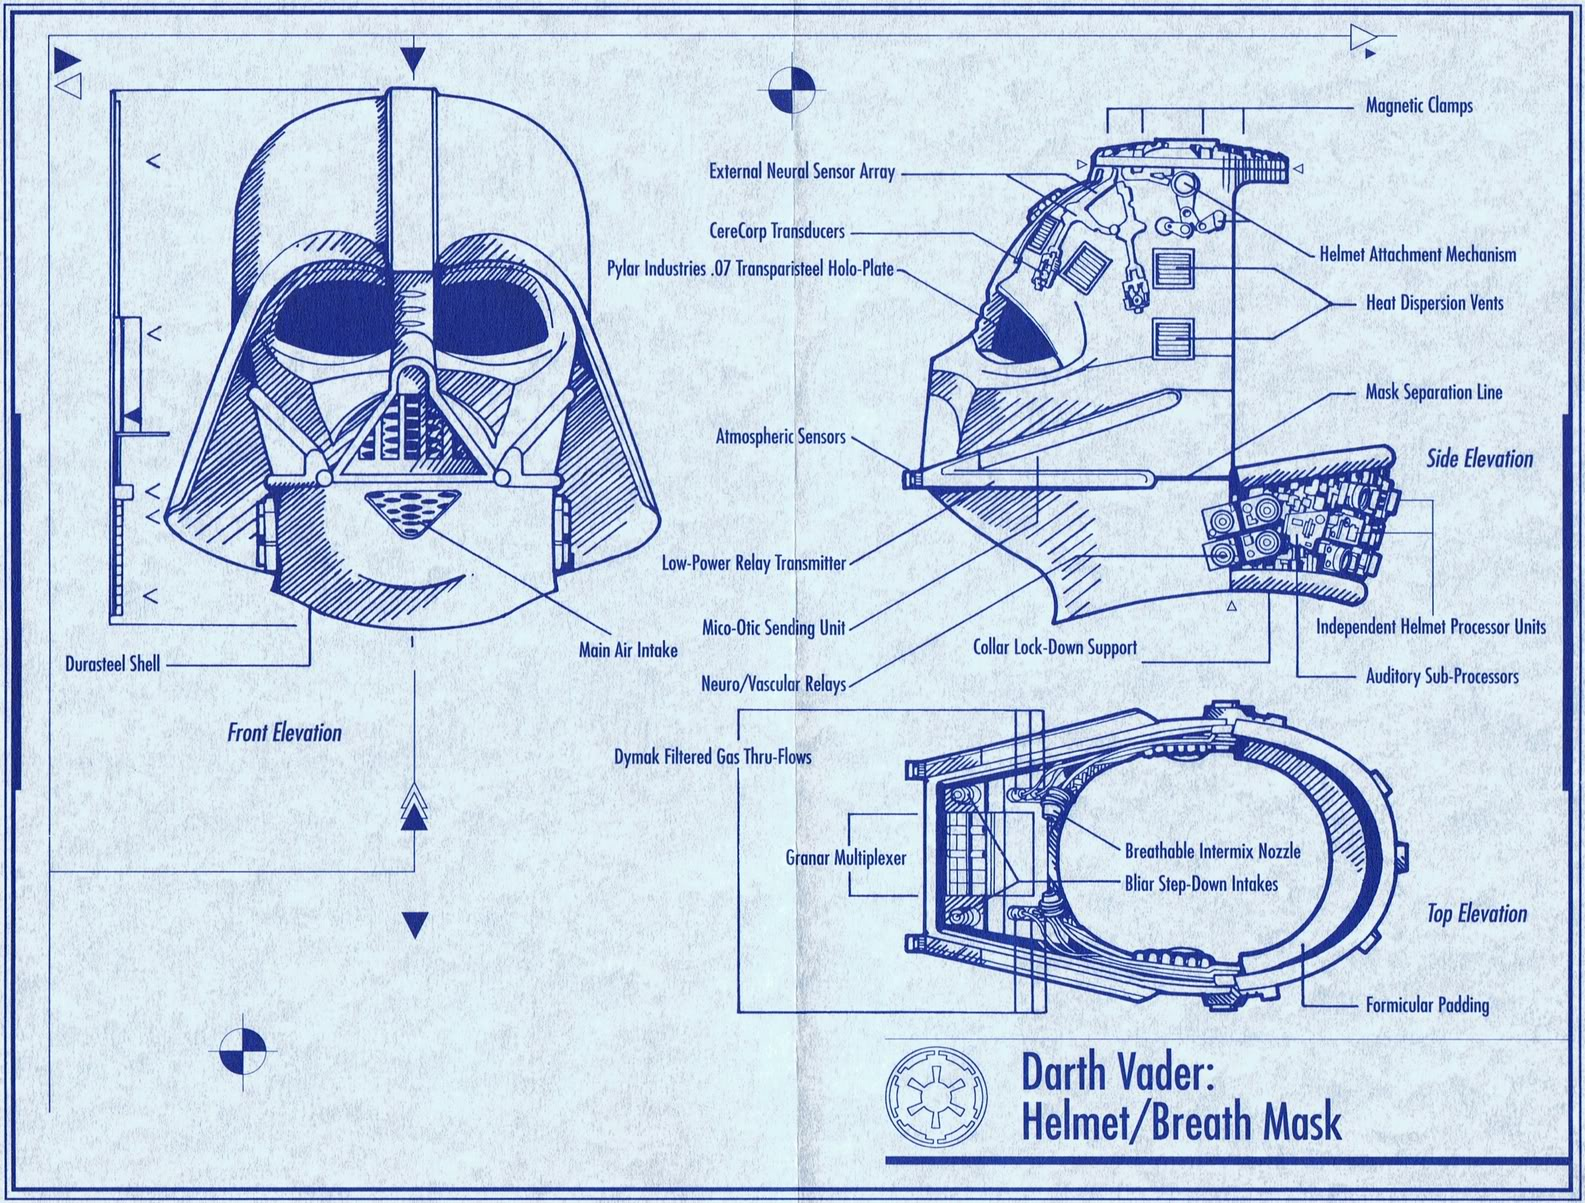 Darth Vaders Armor Wookieepedia Fandom Powered By Wikia Process Flow Diagram Wikipedia